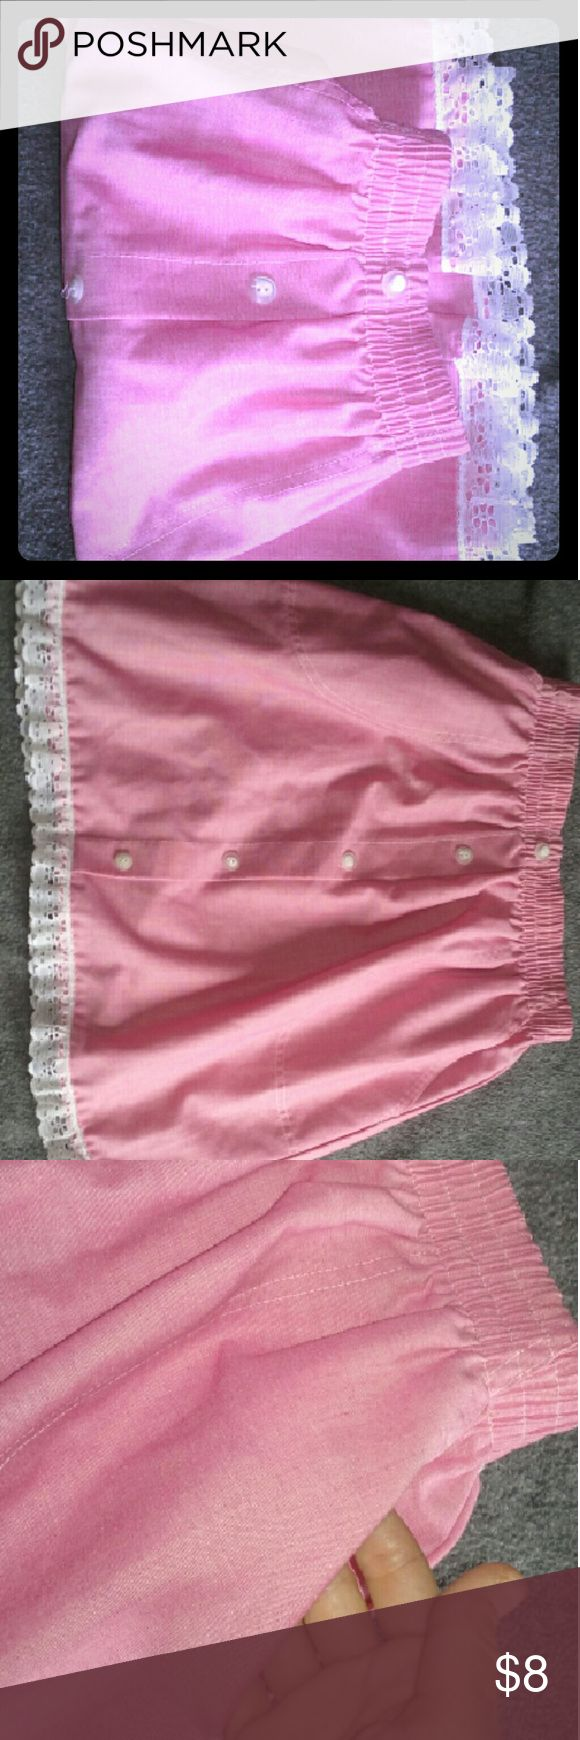 Cape Cod Lovely Pink with Lace trim Skirt Very pretty pink skirt has buttons down the front,however they are just for looks. Pockets on the sides and beautiful lace trim around the bottom. Has an elastic waste and lots of stretch in it.. 60% cotton & 40% polyester made in the U.S.A... Please ask any questions and thanks for stopping by... Cape Cod Skirts Midi